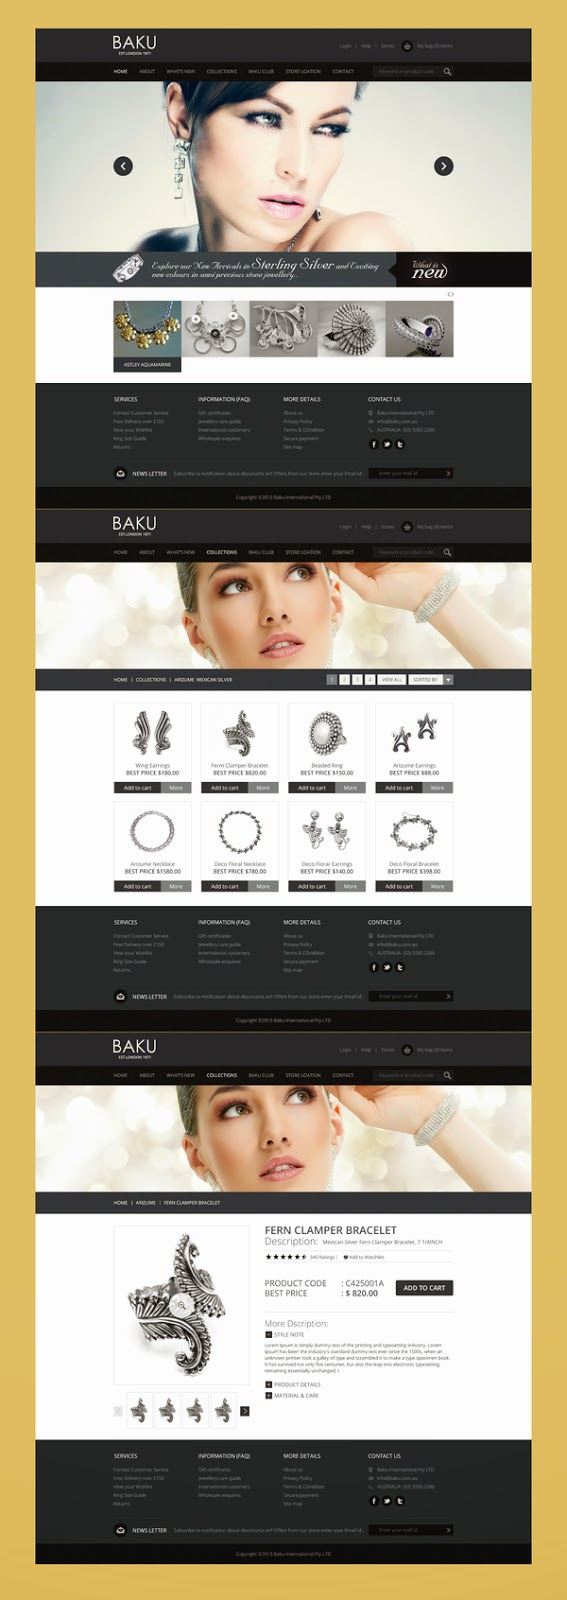 Online Store PSD Template